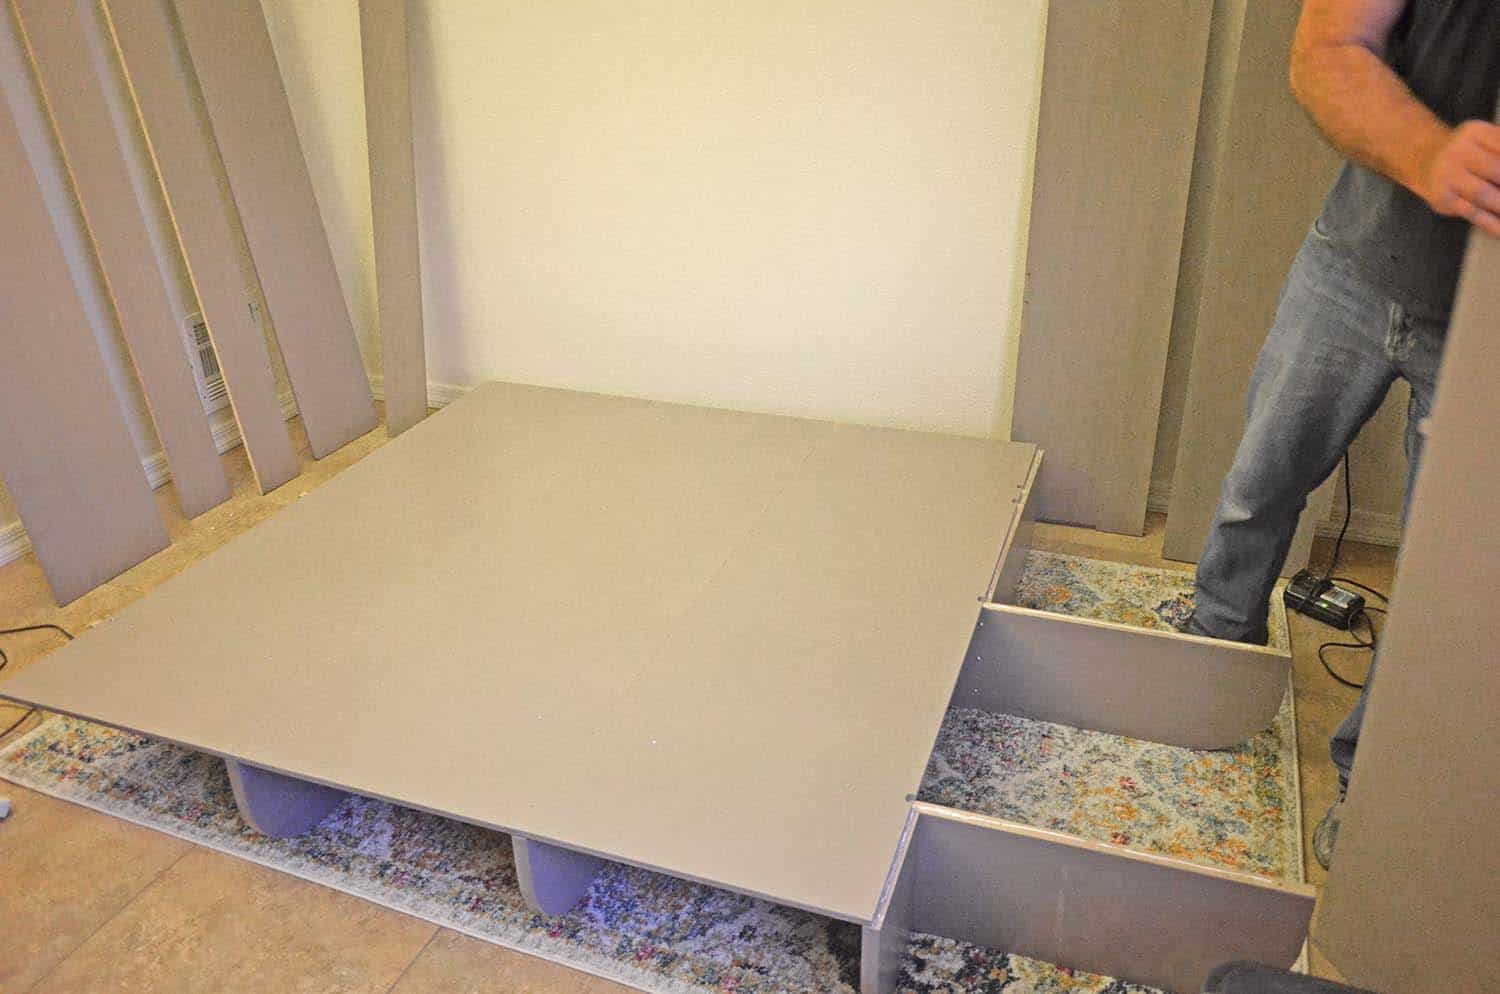 diy-murphy-bed-project